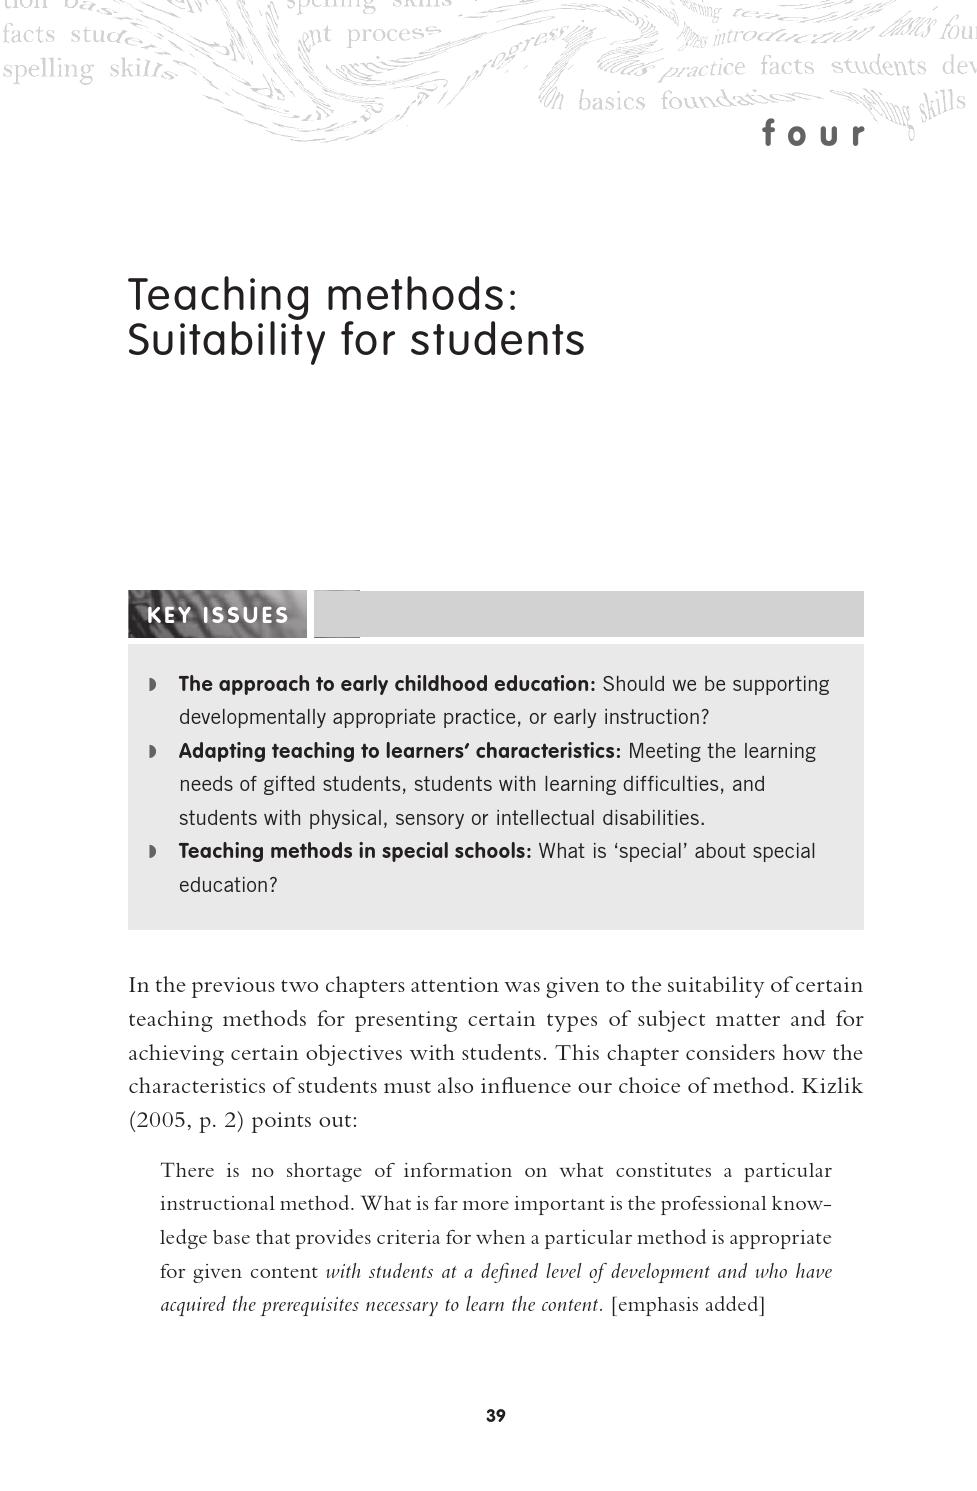 What teachers need to know about teaching methods (1) by Toowoomba